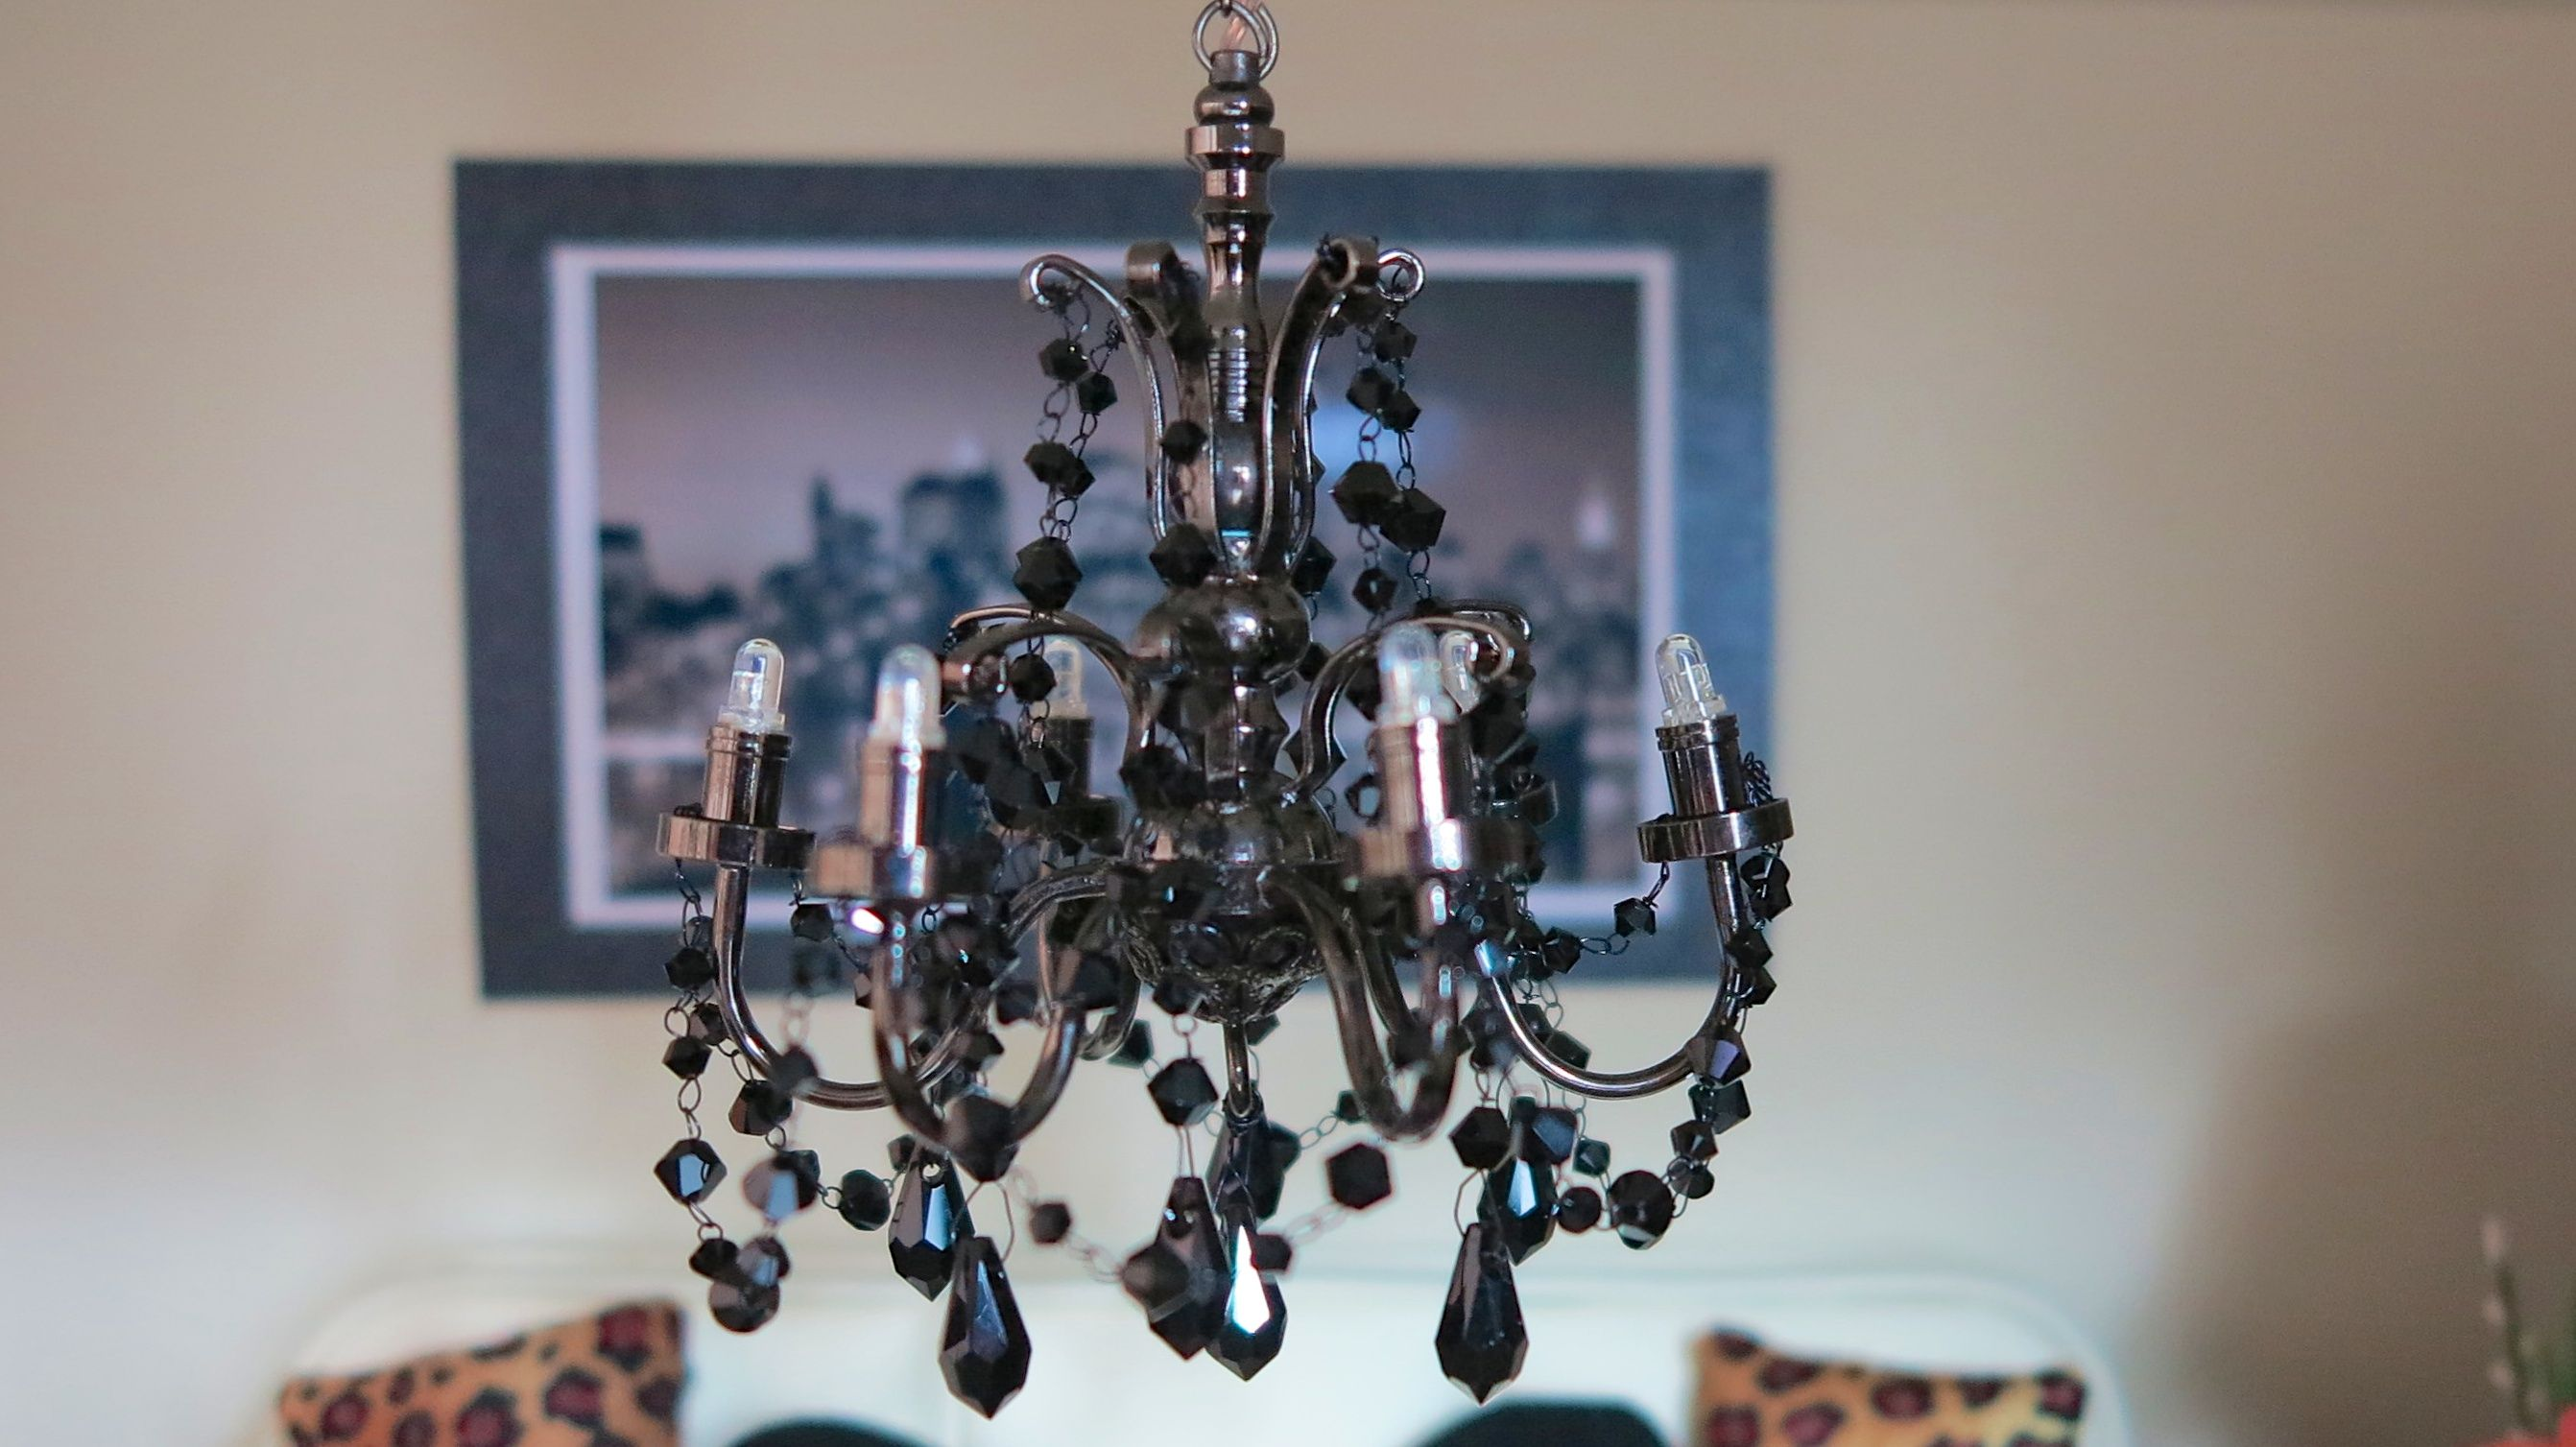 Dollhouse miniature chandelier made with black swarovski elements dollhouse miniature chandelier made with black swarovski elements bought at an online shop in nyc arubaitofo Choice Image